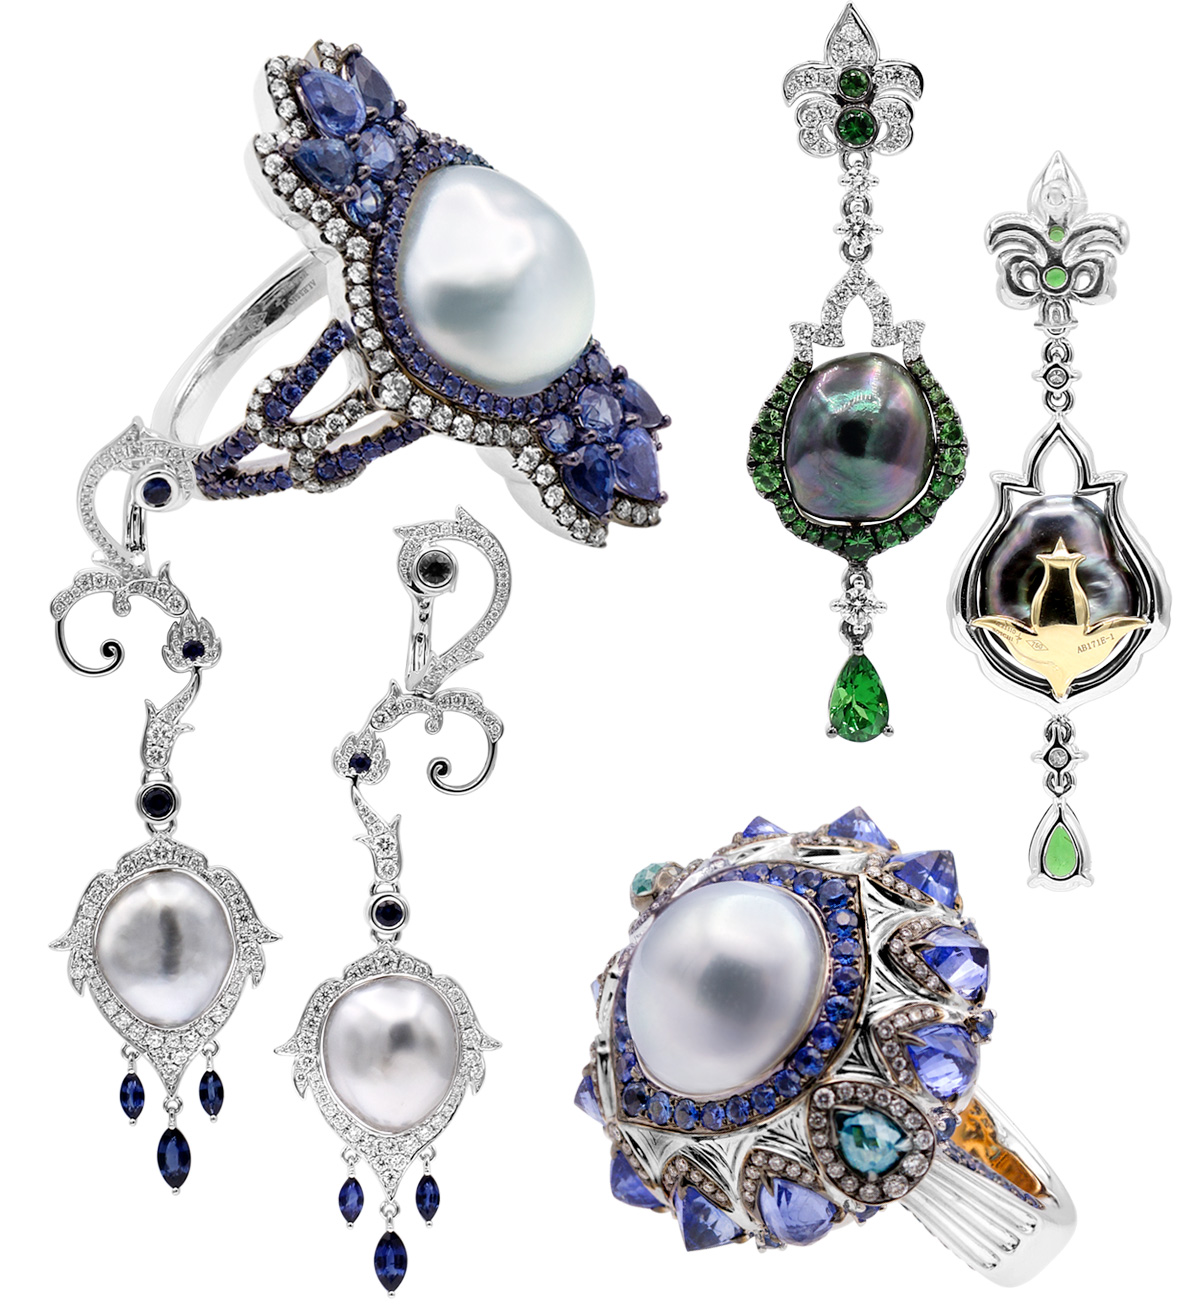 Alessio Boschi Mughal Perfumes collection rings and earrings